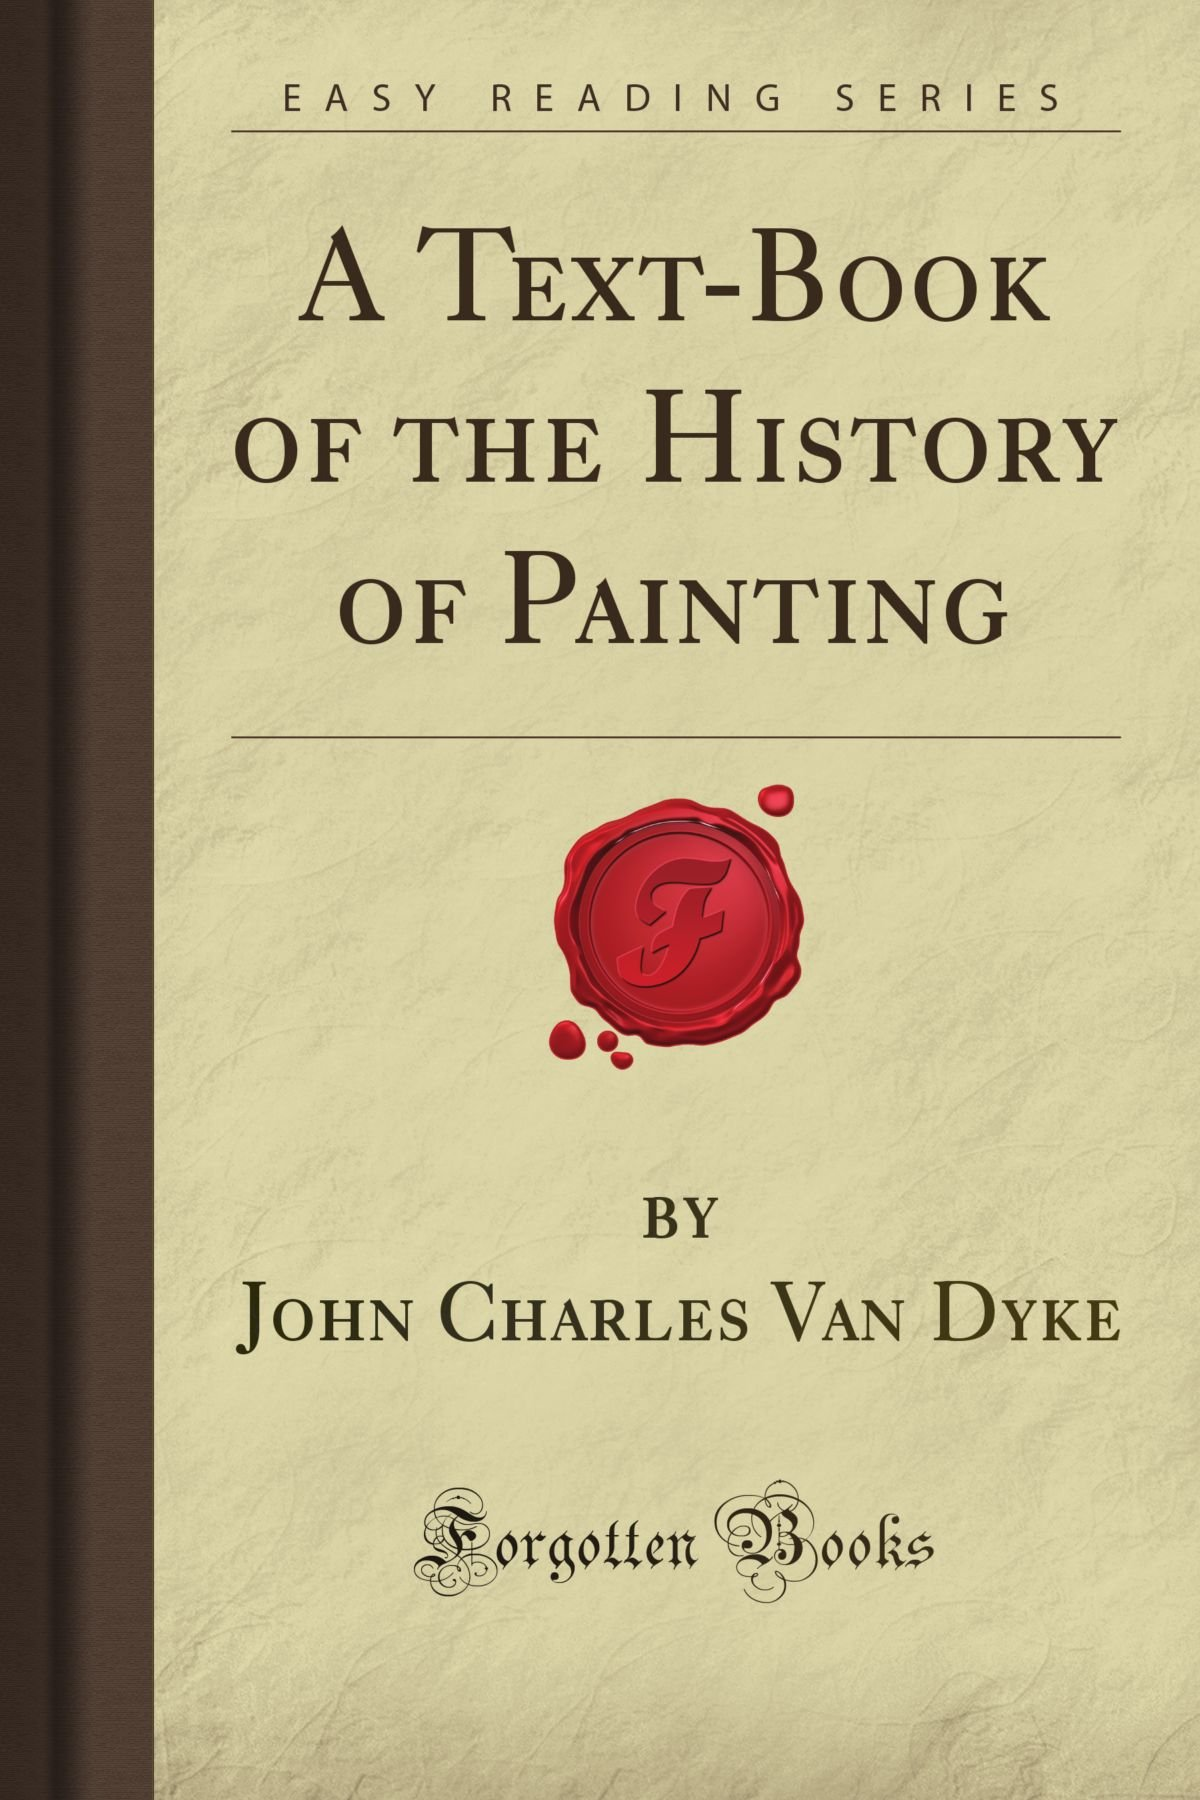 Download A Text-Book of the History of Painting (Forgotten Books) pdf